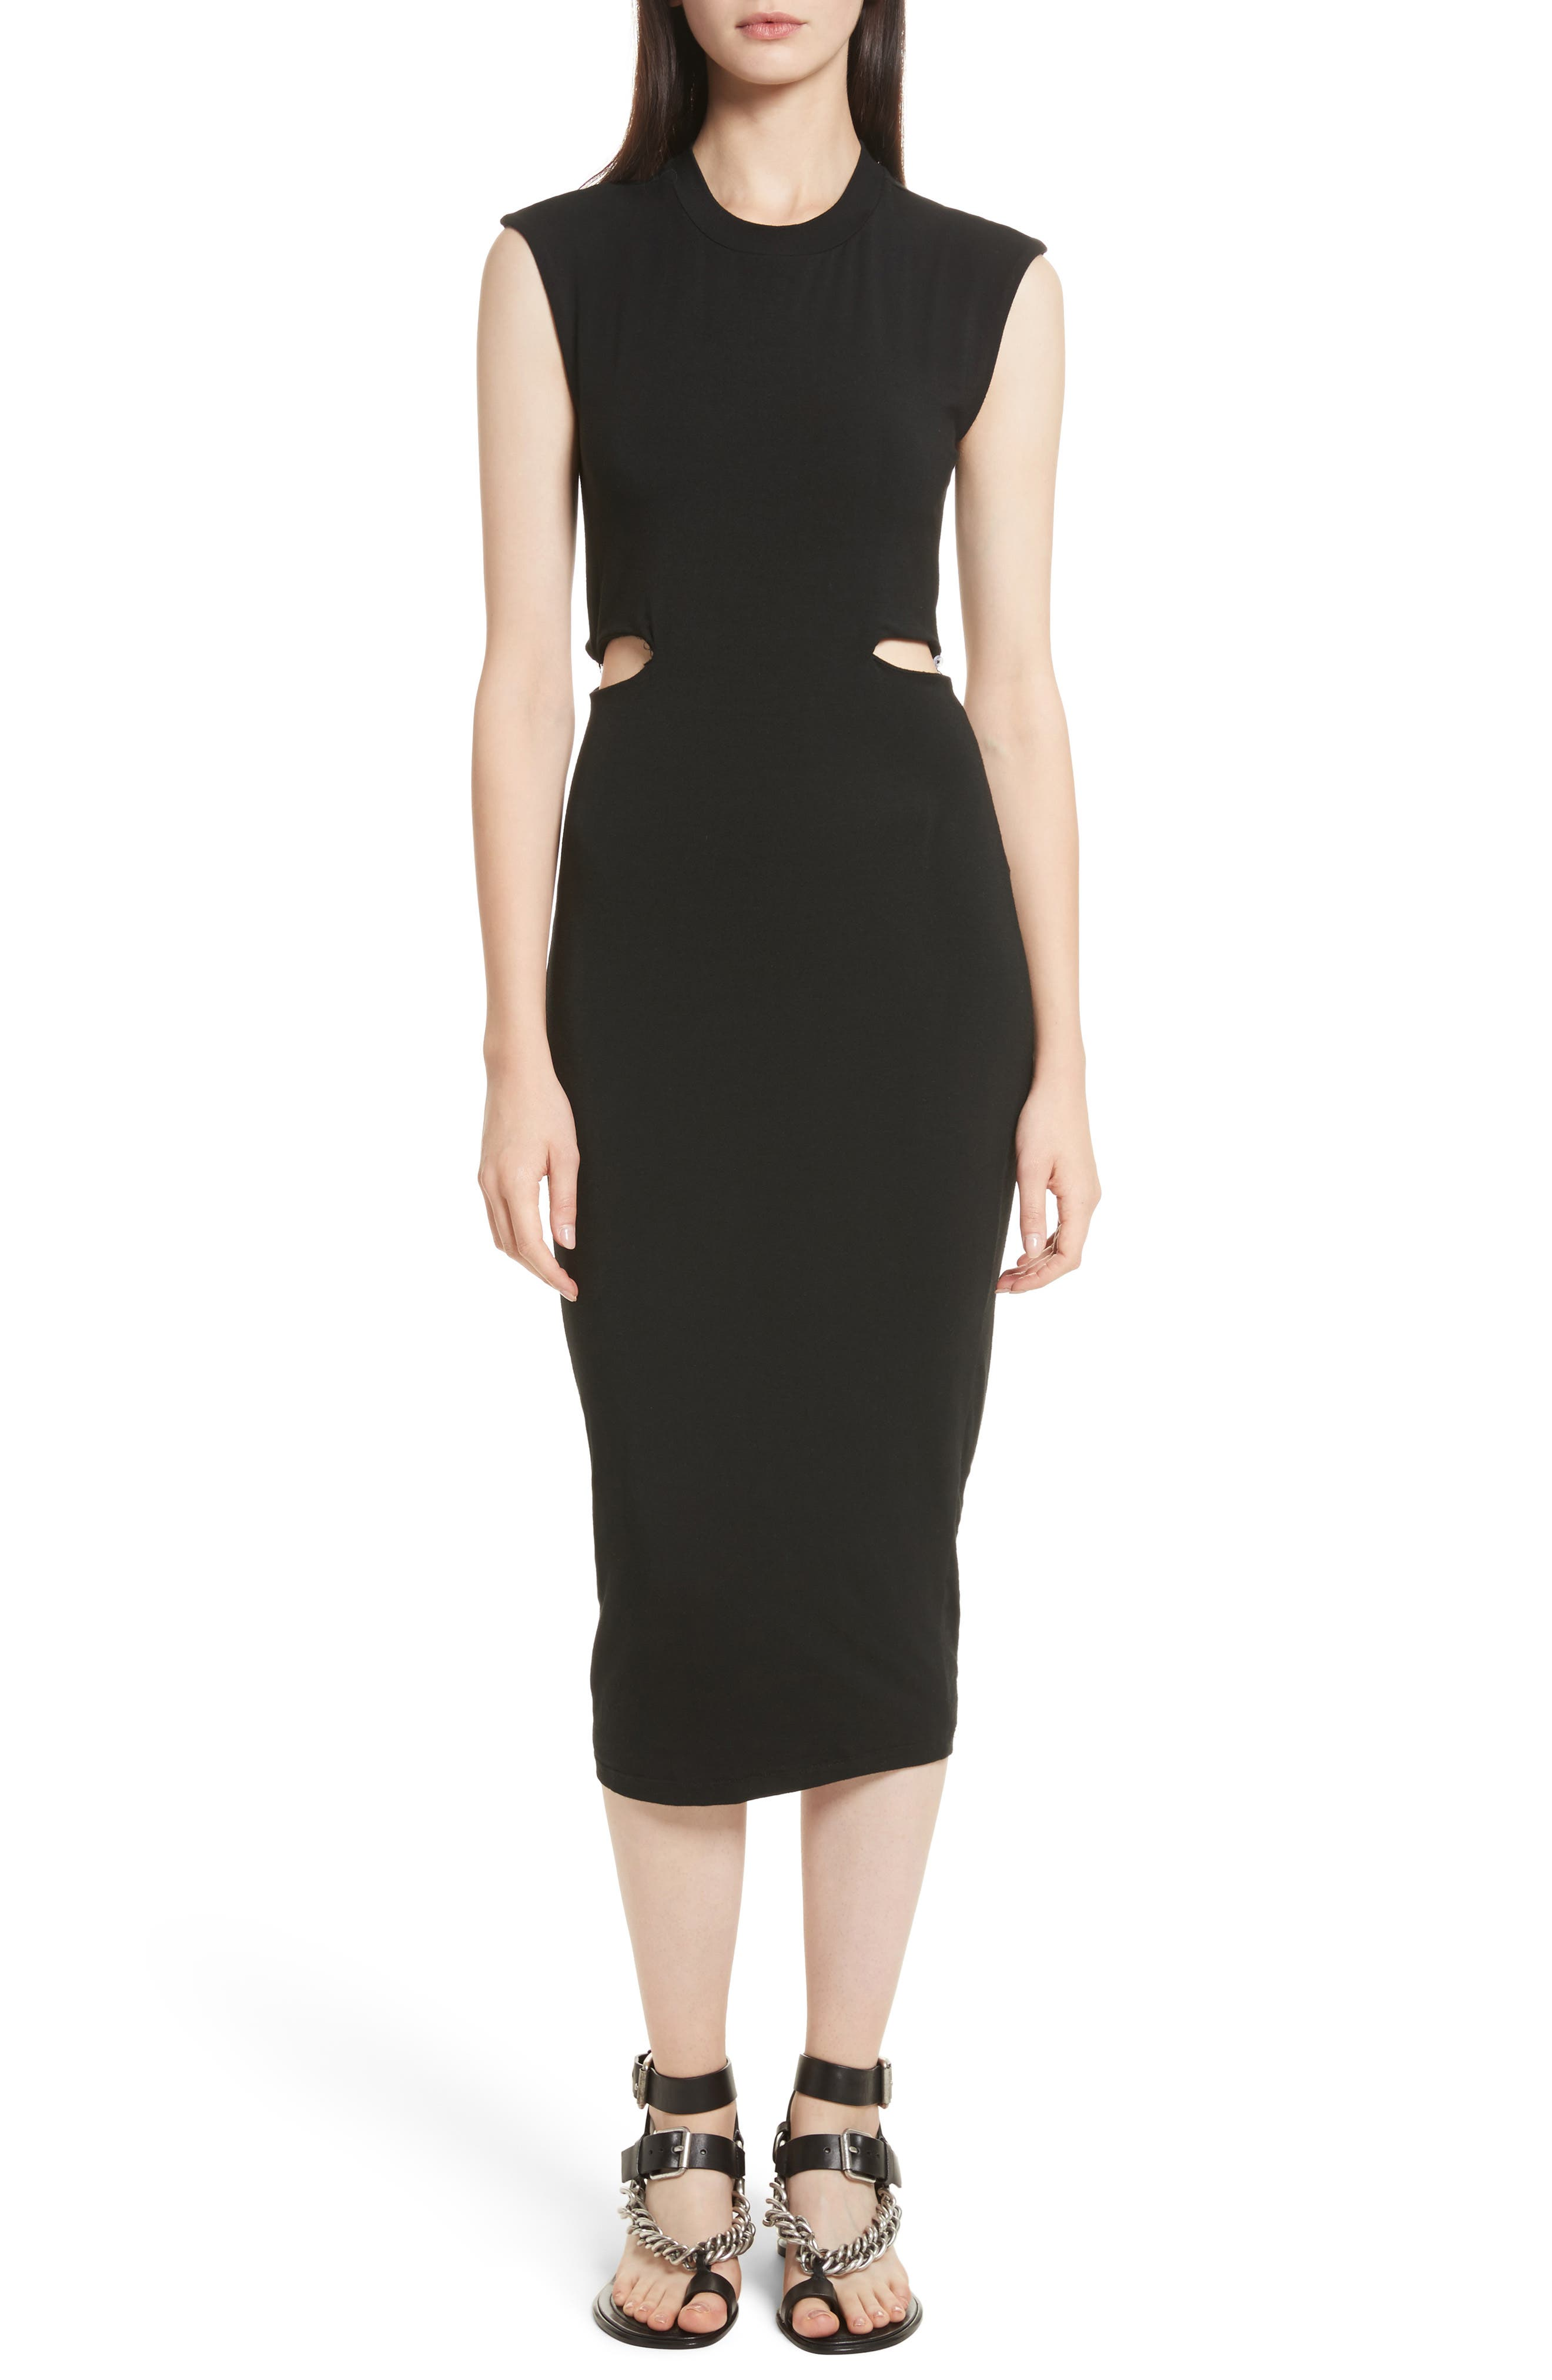 Alternate Image 1 Selected - T by Alexander Wang Cutout Stretch Jersey Dress